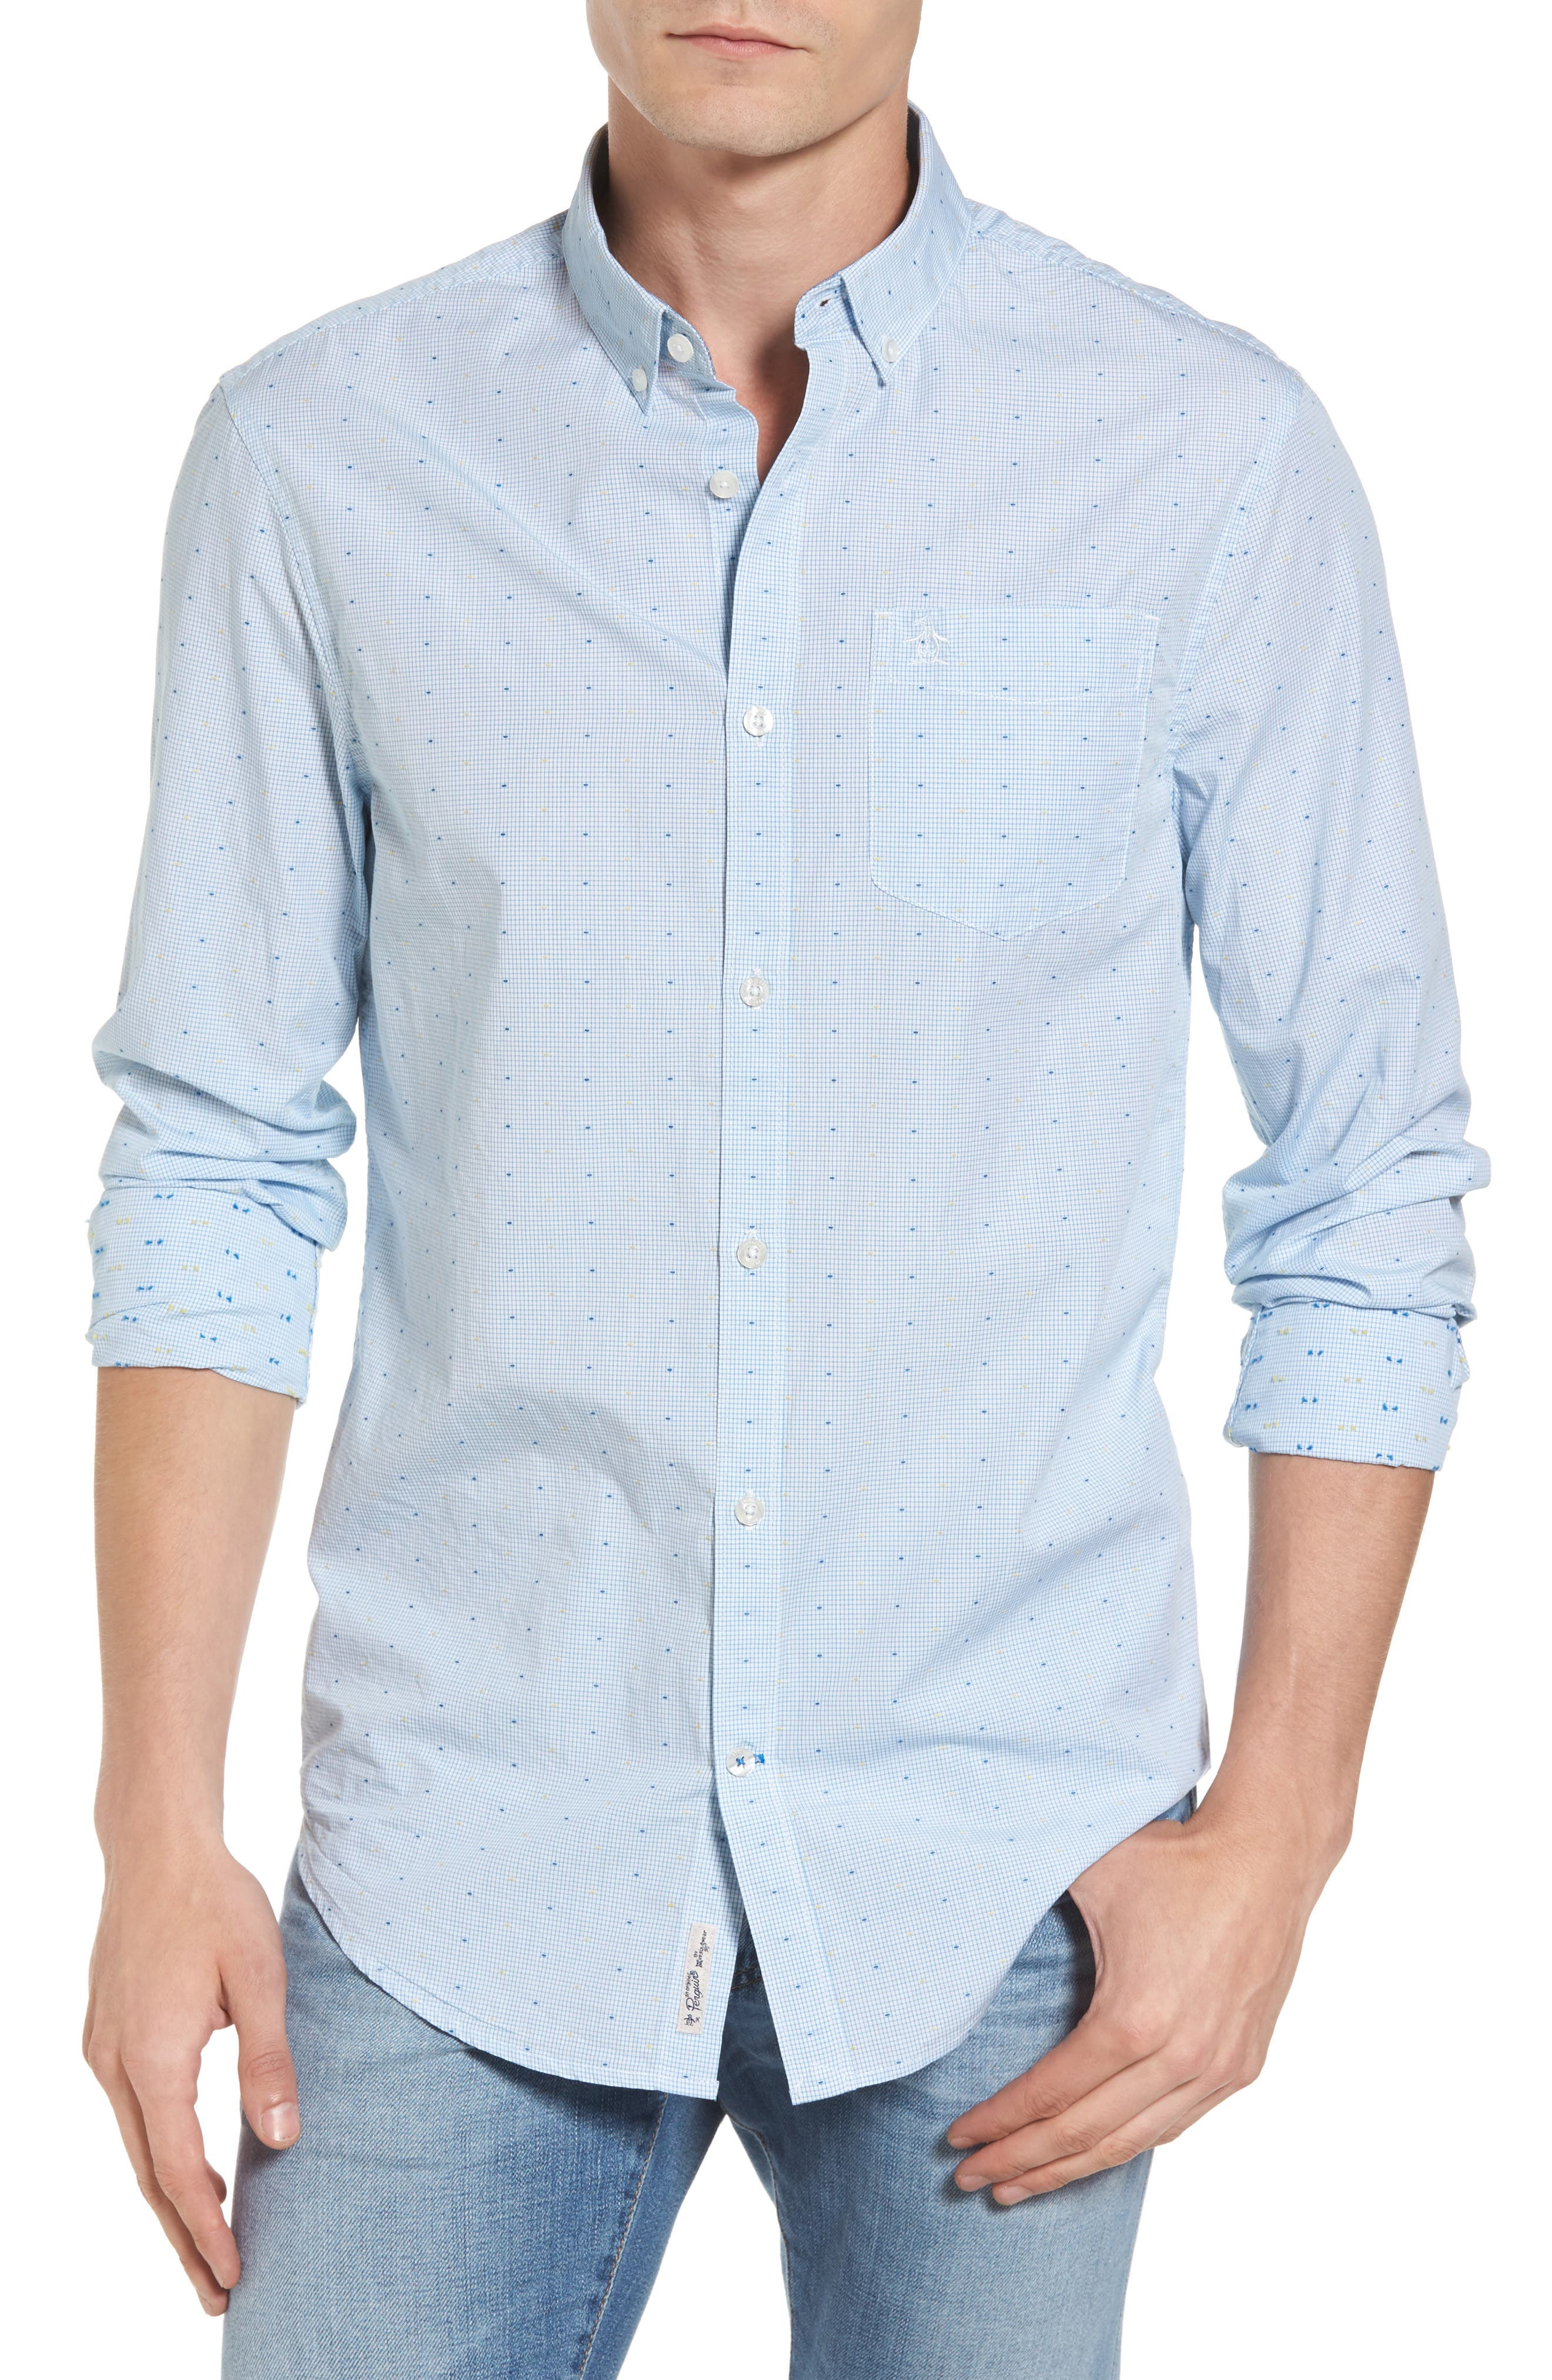 Main Image - Original Penguin Clipped Dobby Woven Shirt